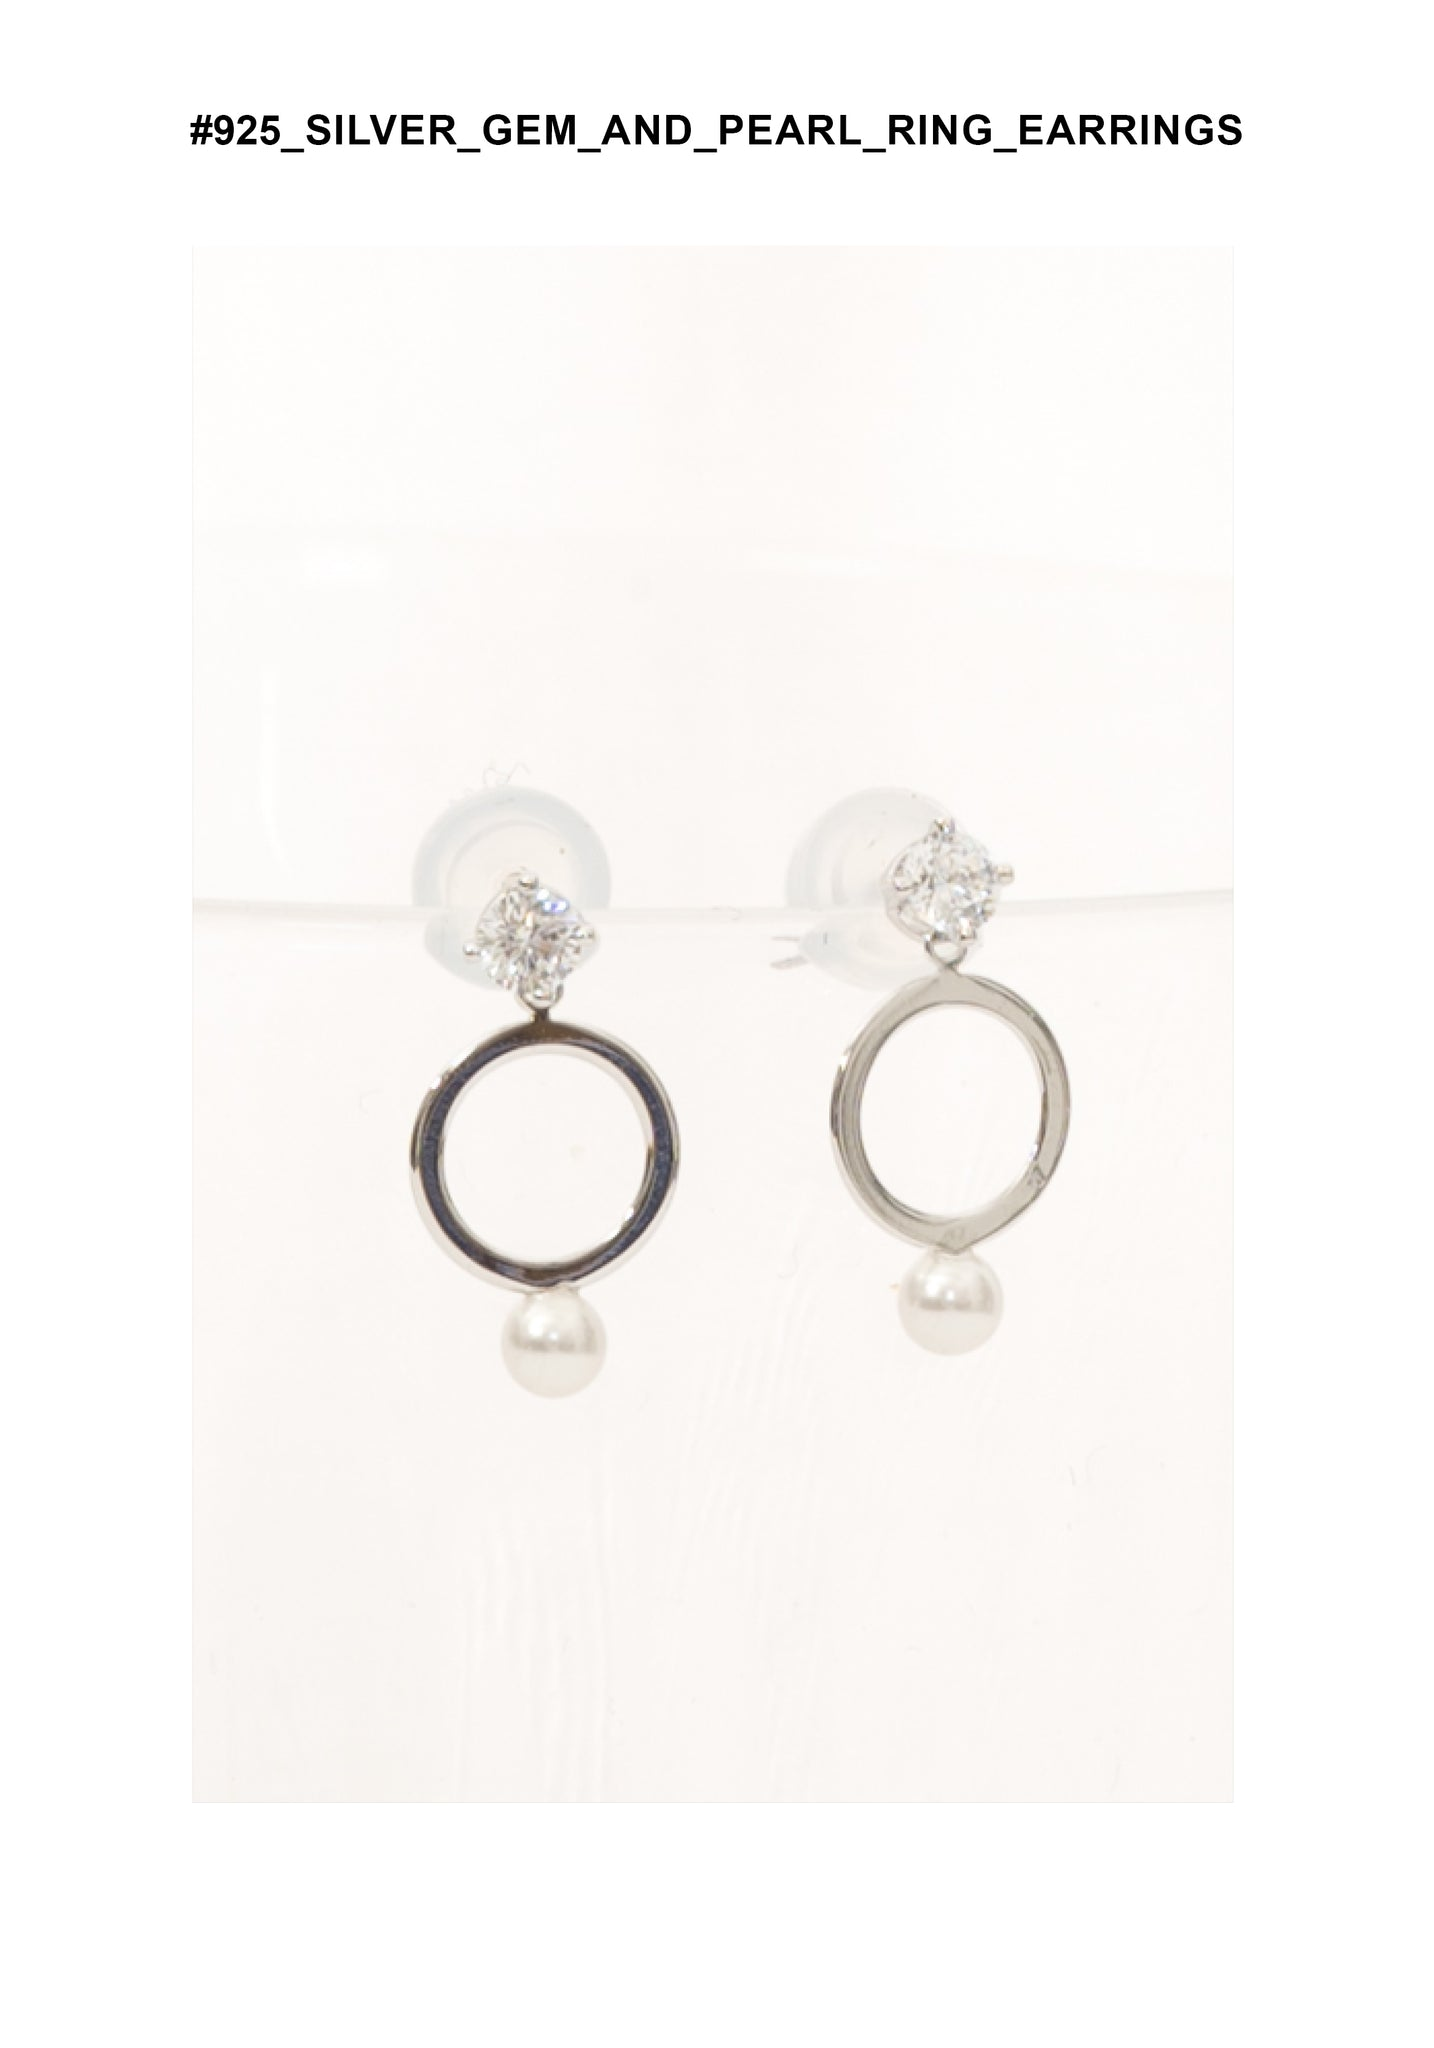 925 Silver Gem And Pearl Ring Earrings - whoami